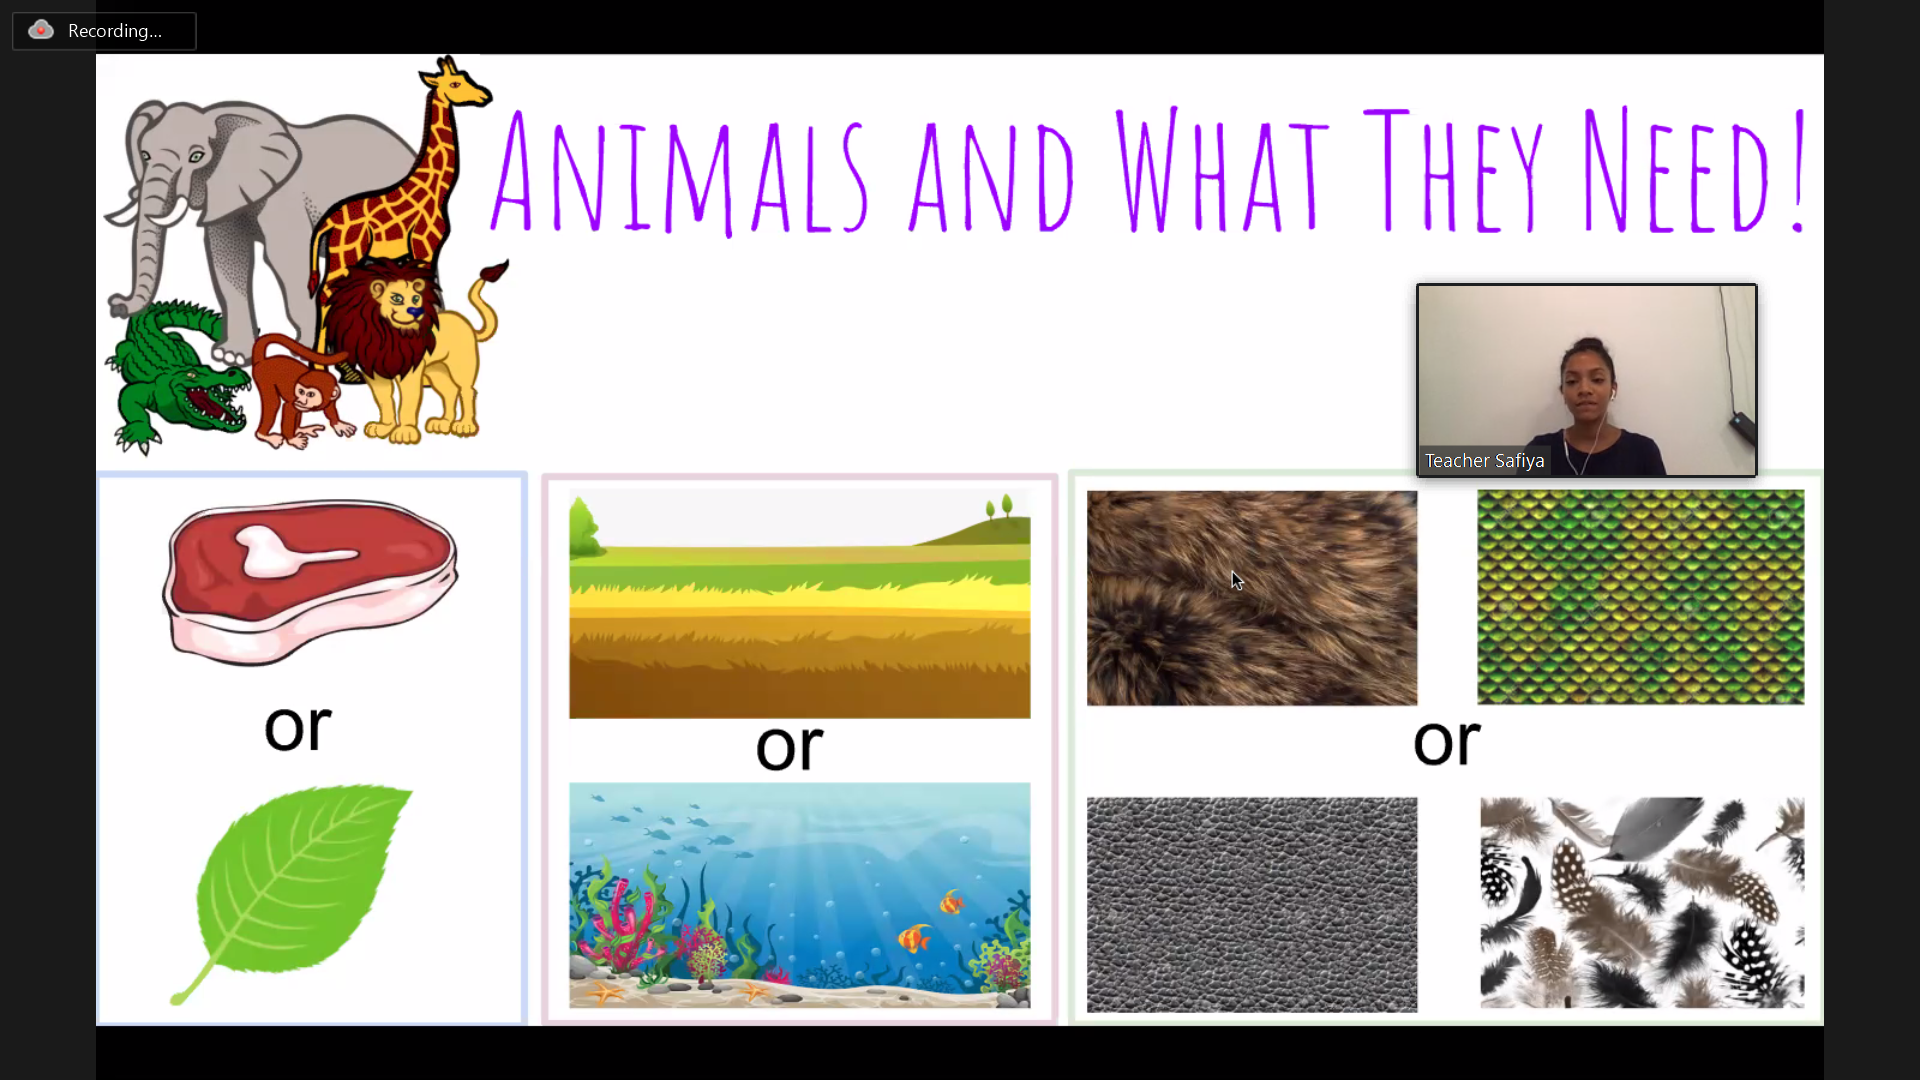 Enrichment: Animals and what they need